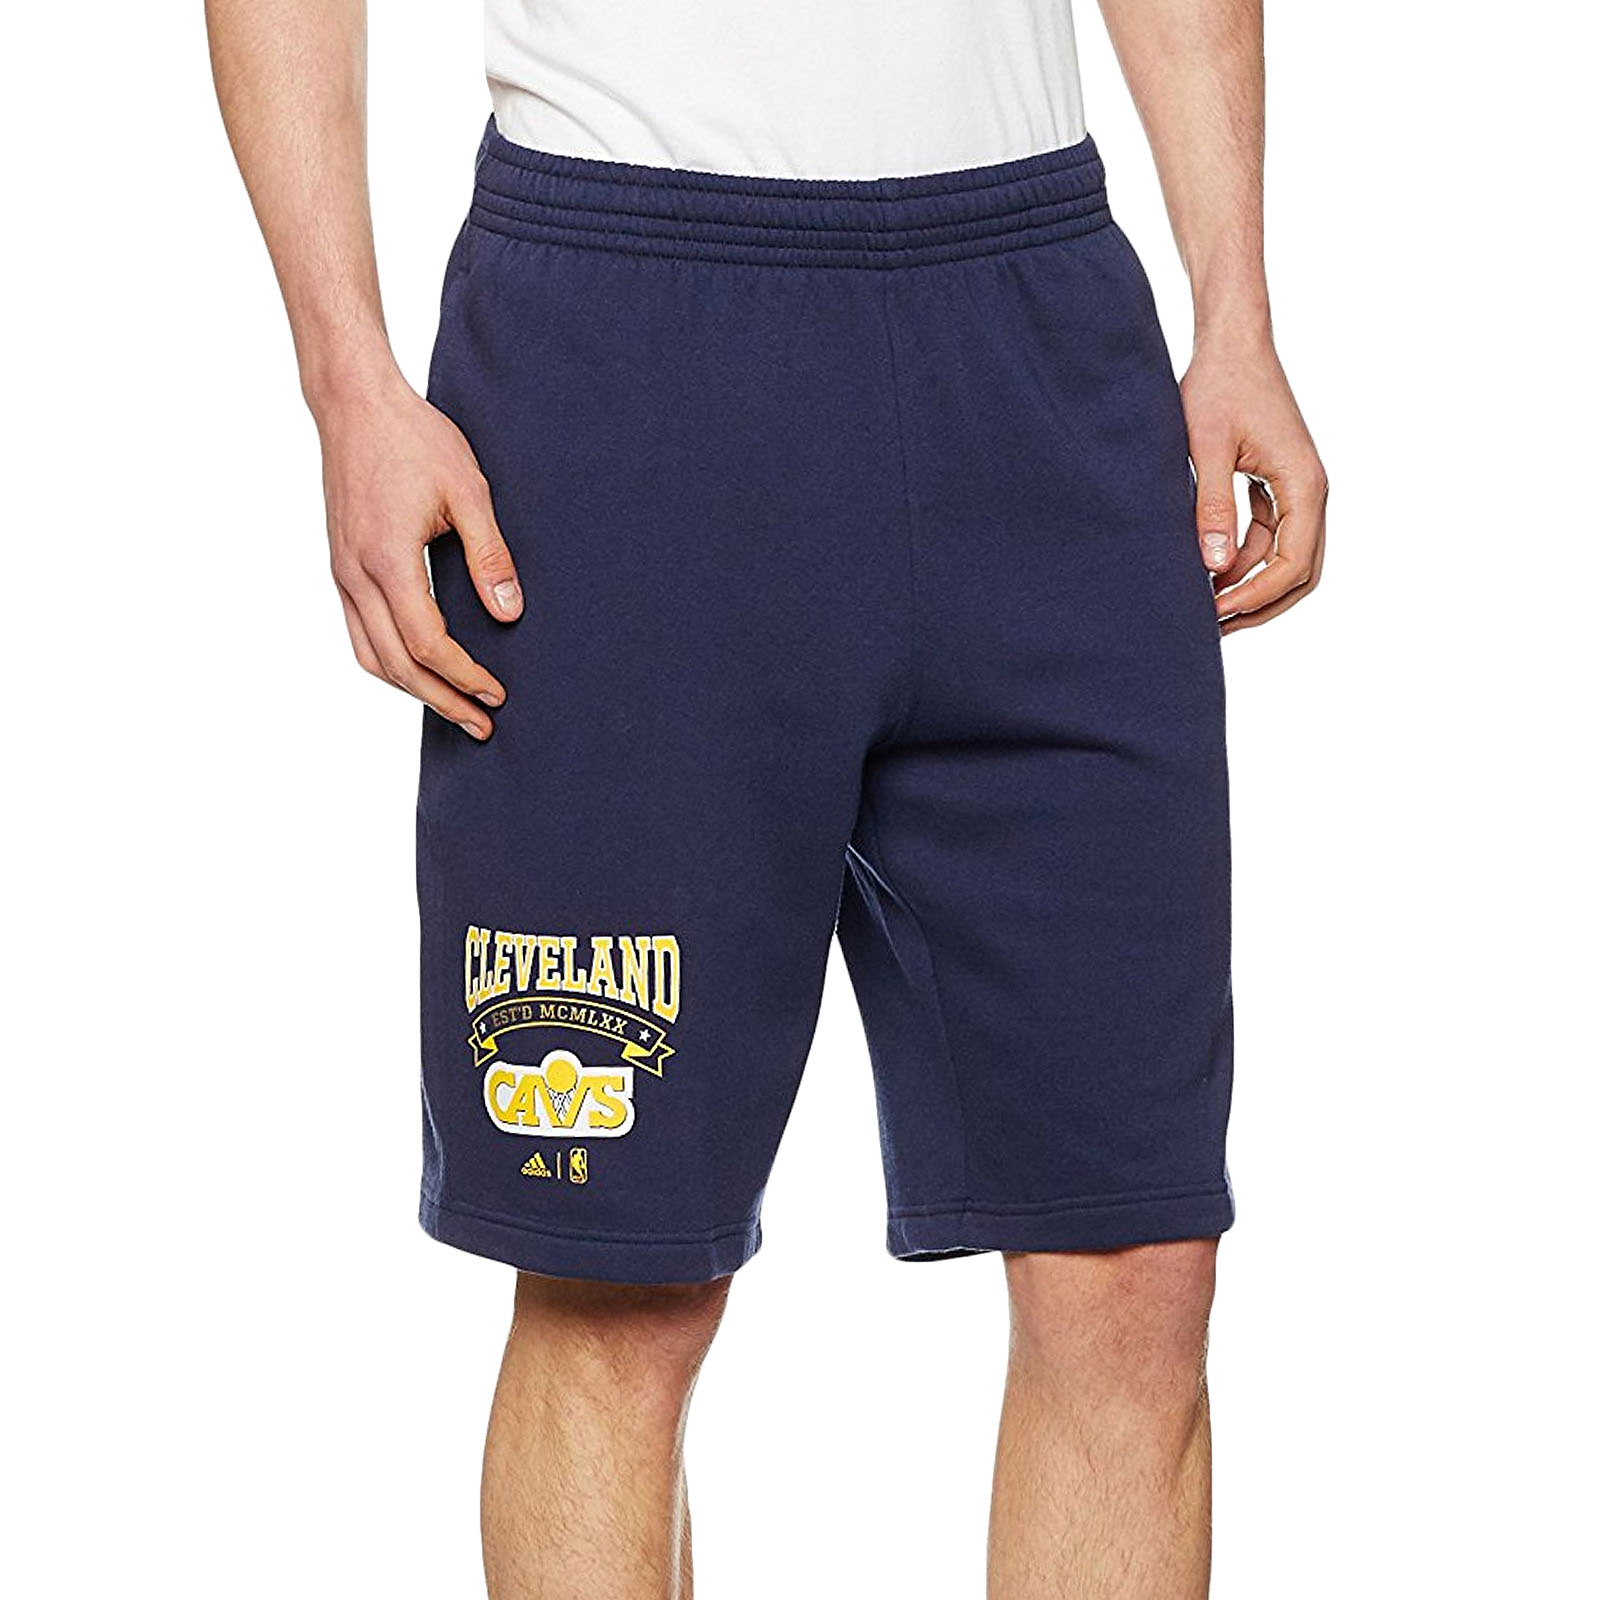 Details about adidas Performance Mens Cleveland Cavaliers Washed NBA Basketball Shorts Navy